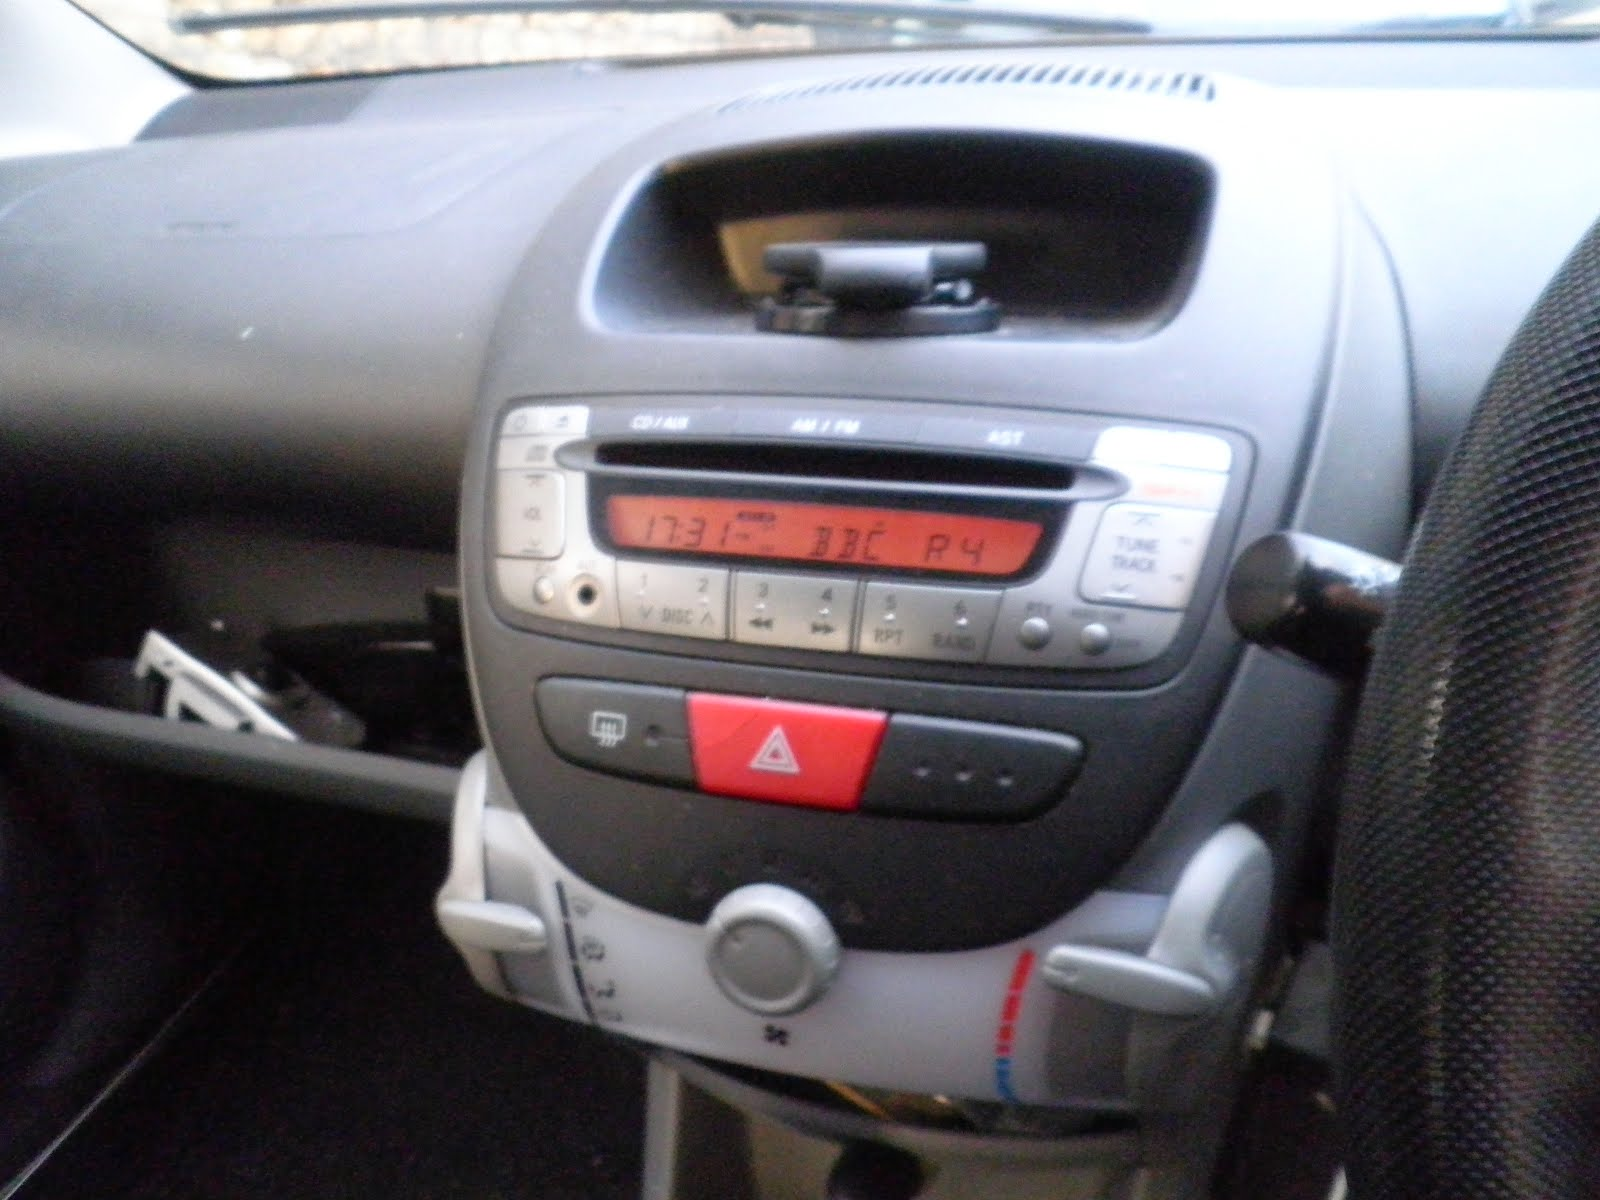 Fuse Box In Peugeot 107 Wiring Diagrams 206 Interior Cover Images Gallery